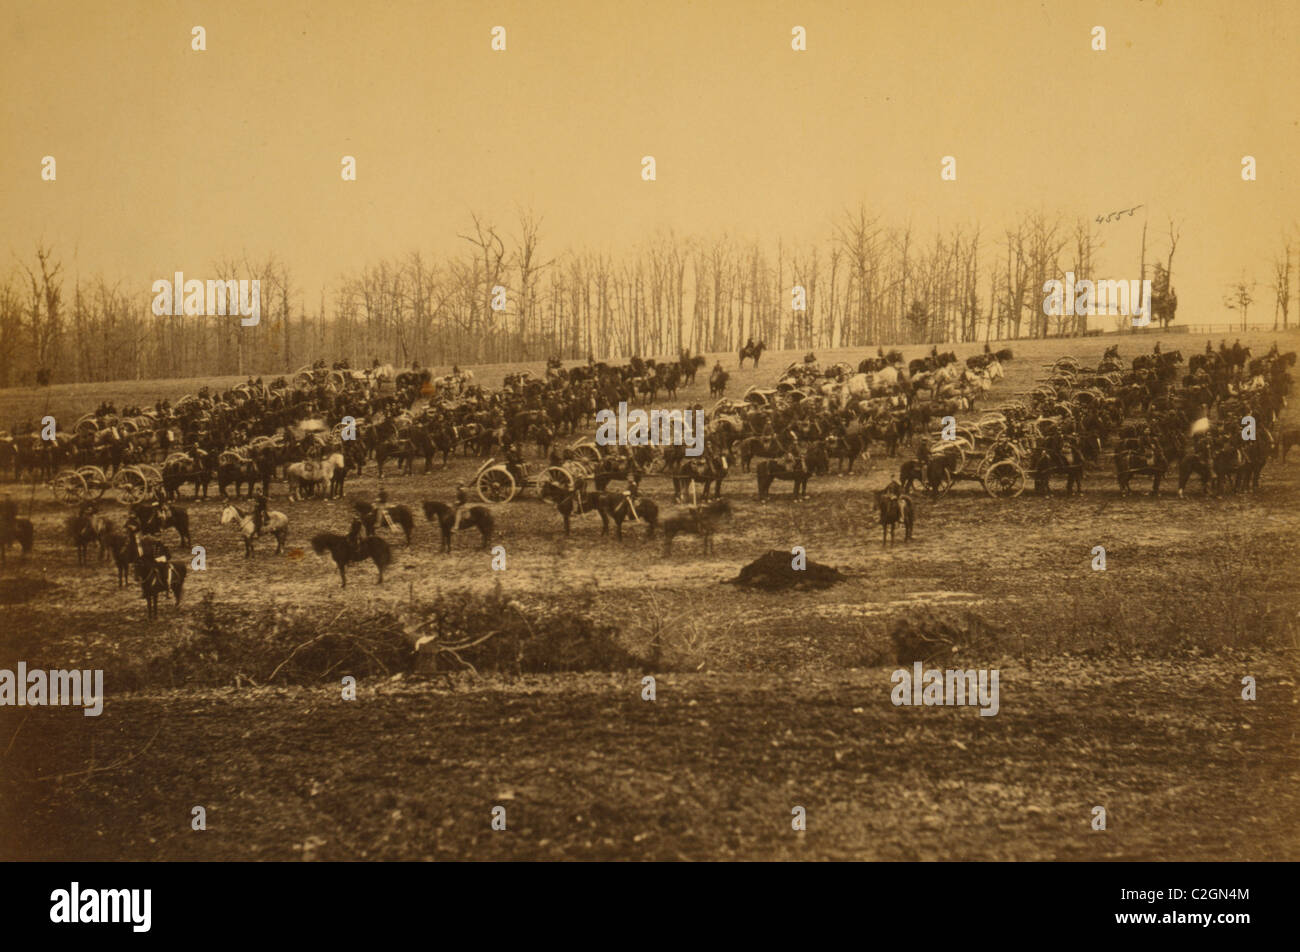 Horse artillery on parade grounds - Stock Image